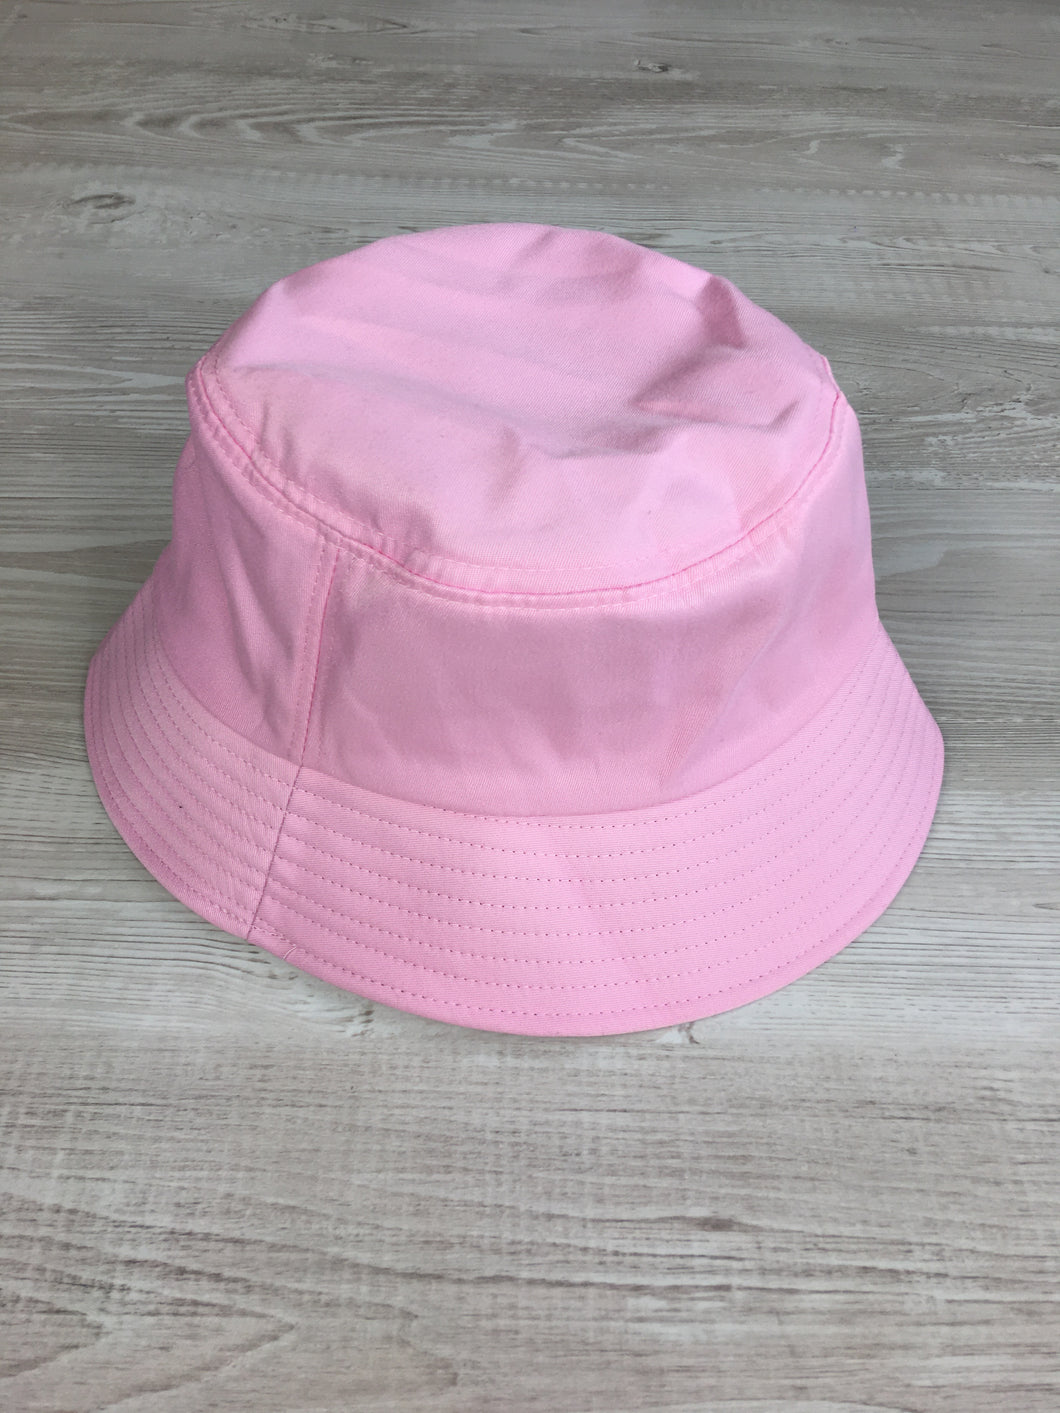 Bucket hat in baby pink